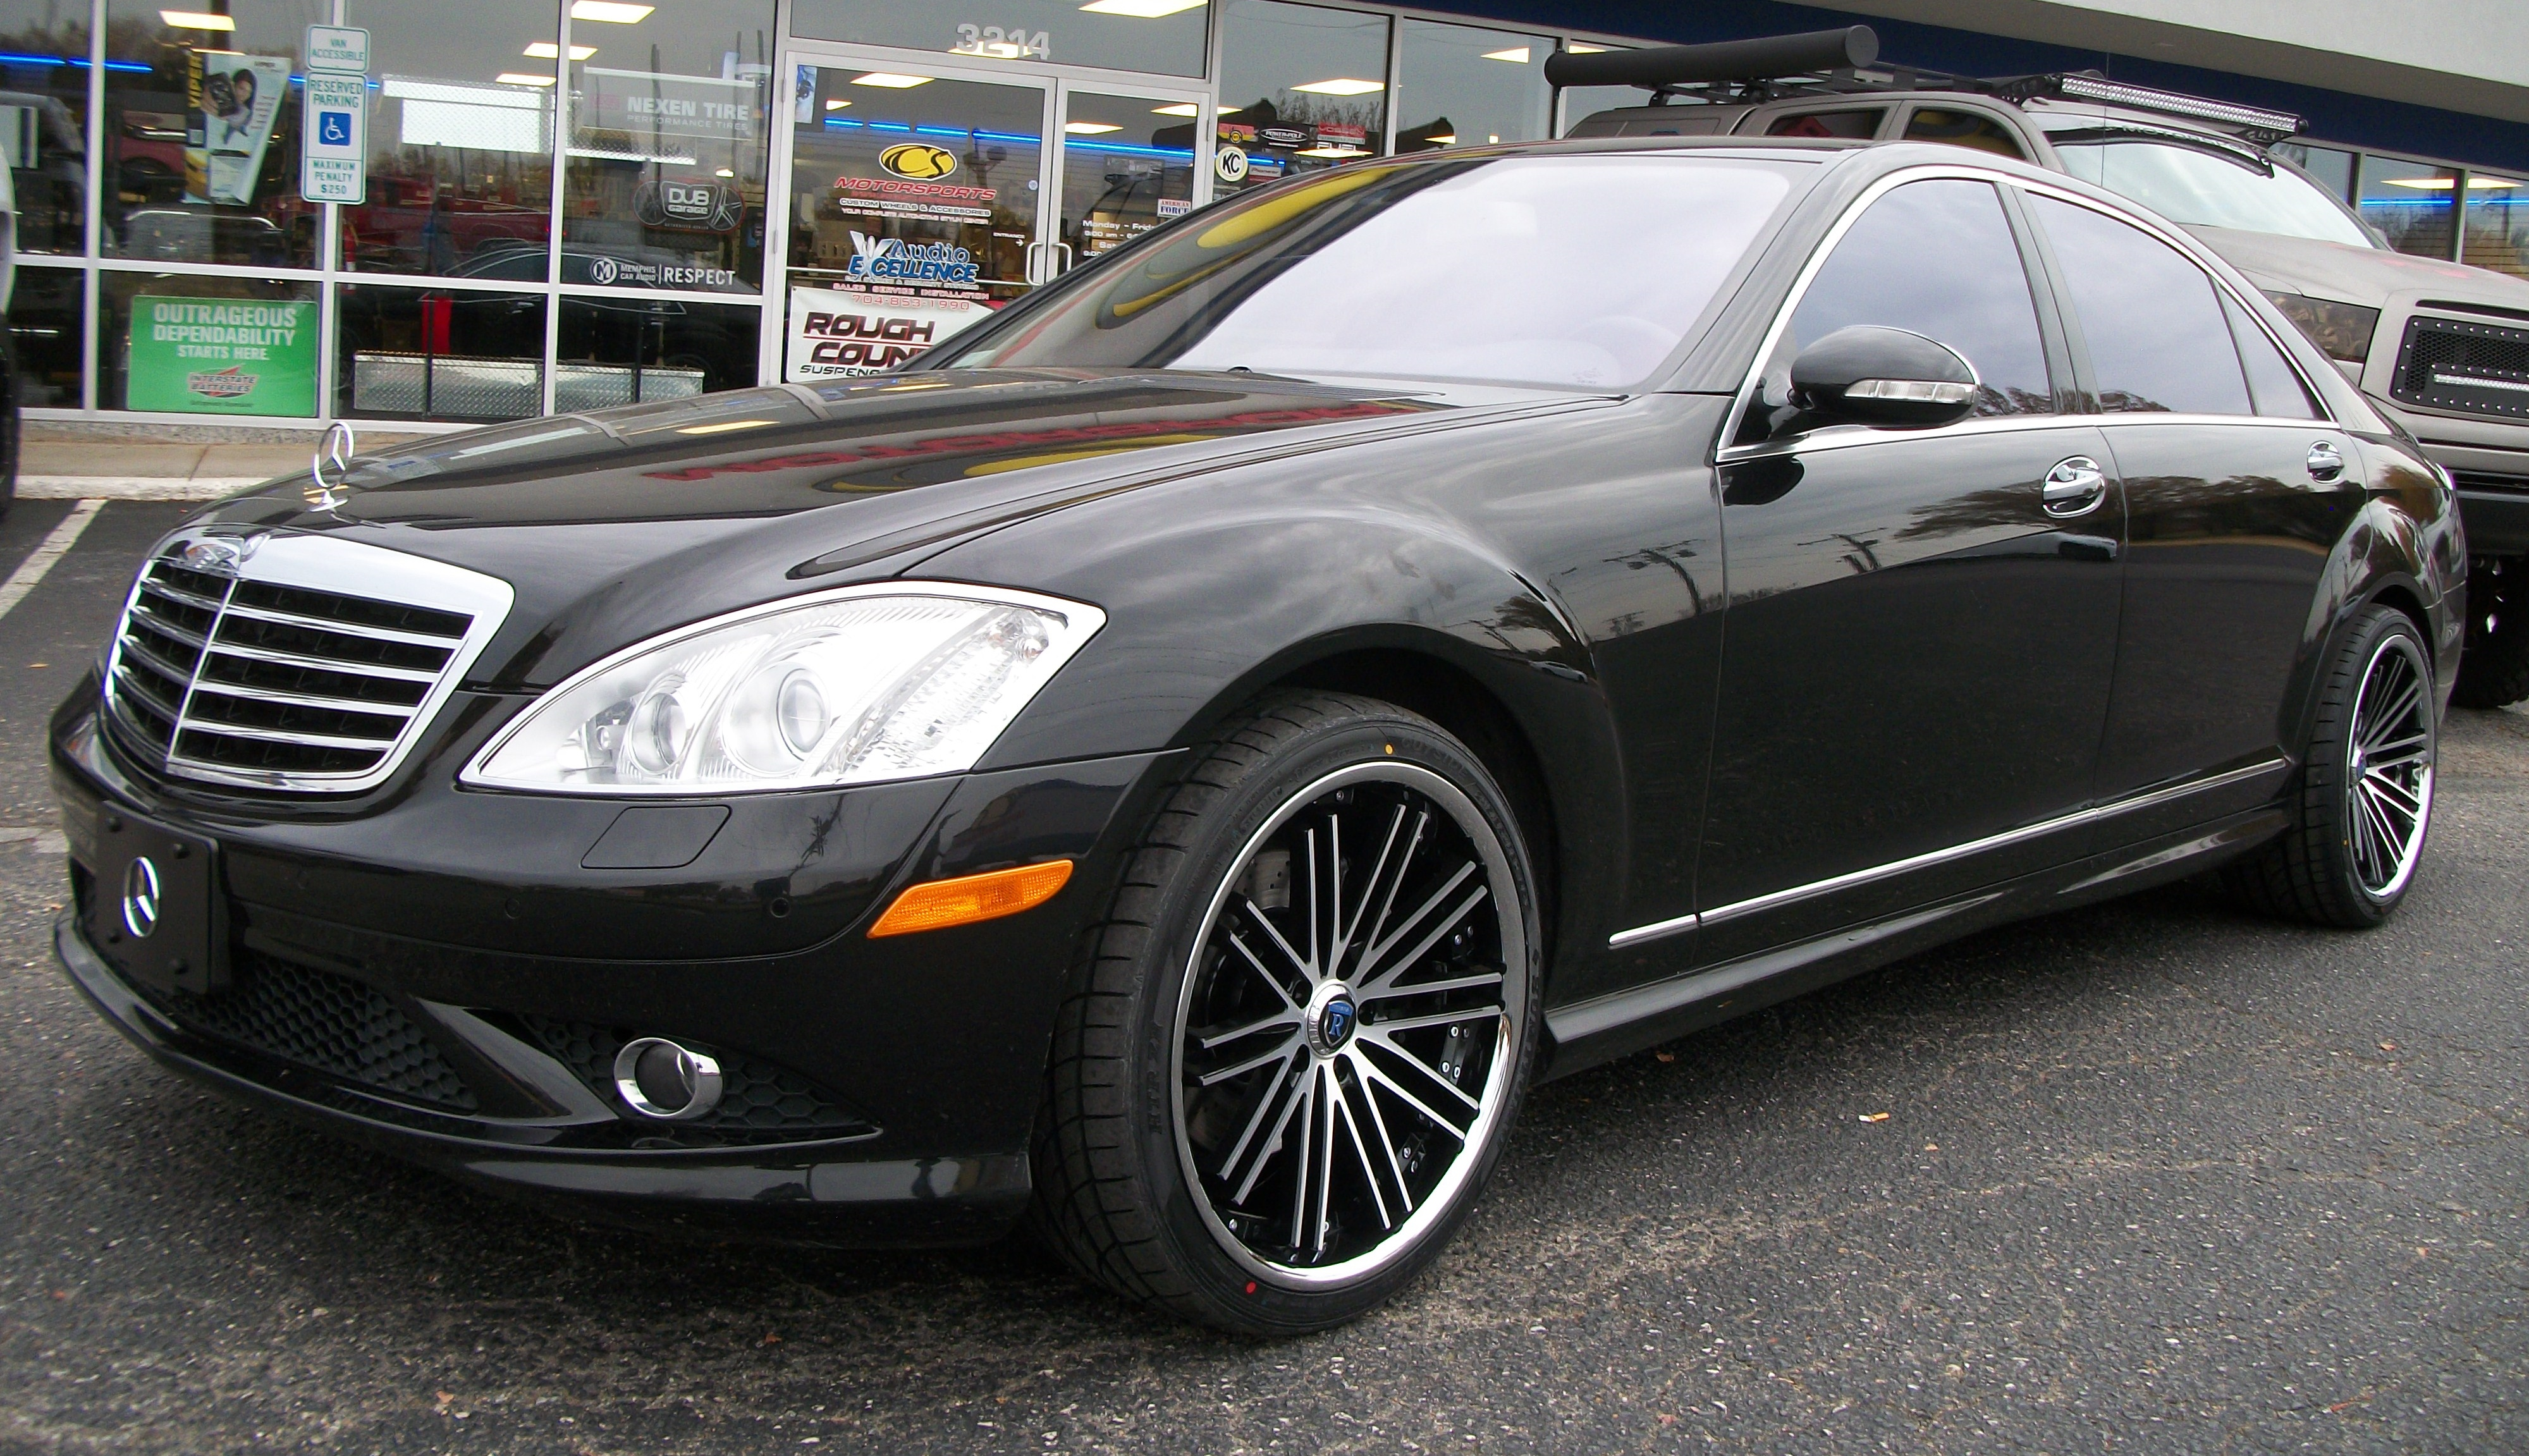 2007 CLS 550 MB 004